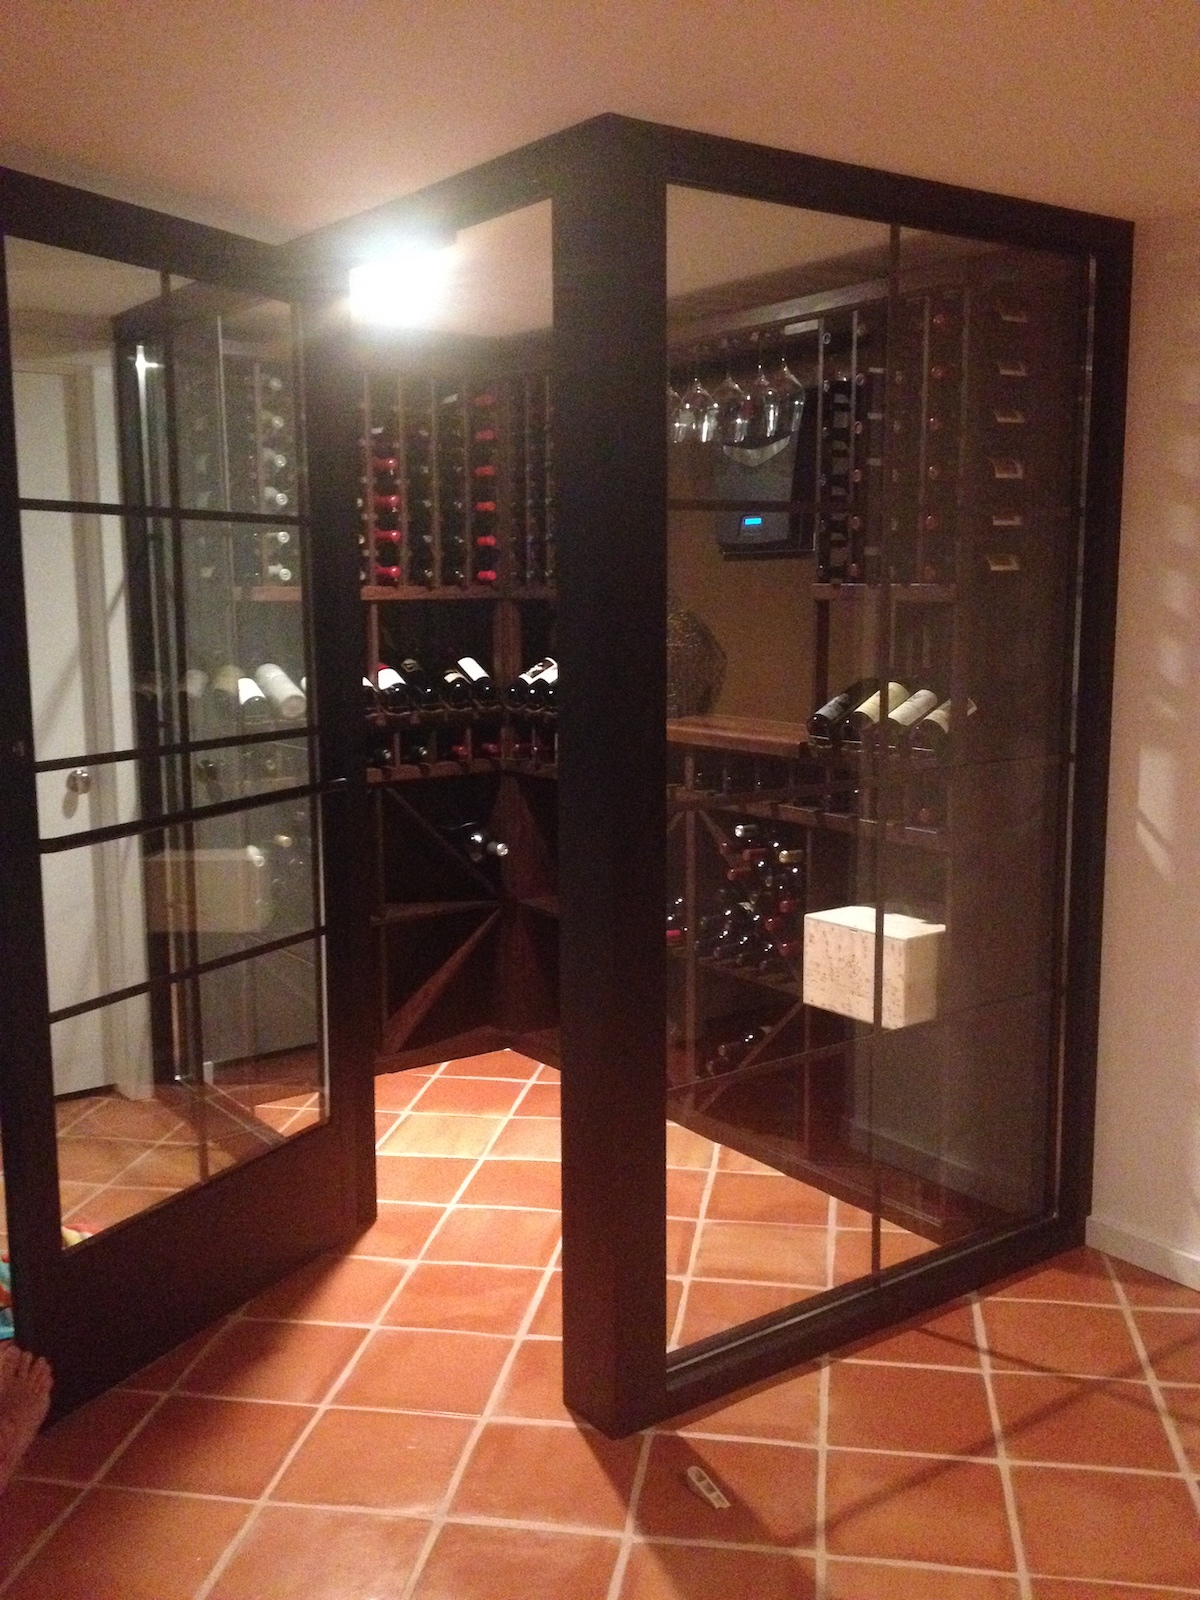 Traditional Wine Racks America Projects Gallery Wine Wine Cellar Ing Wine Rack Above American Fridge Wine Racks America Jobs houzz 01 Wine Racks America